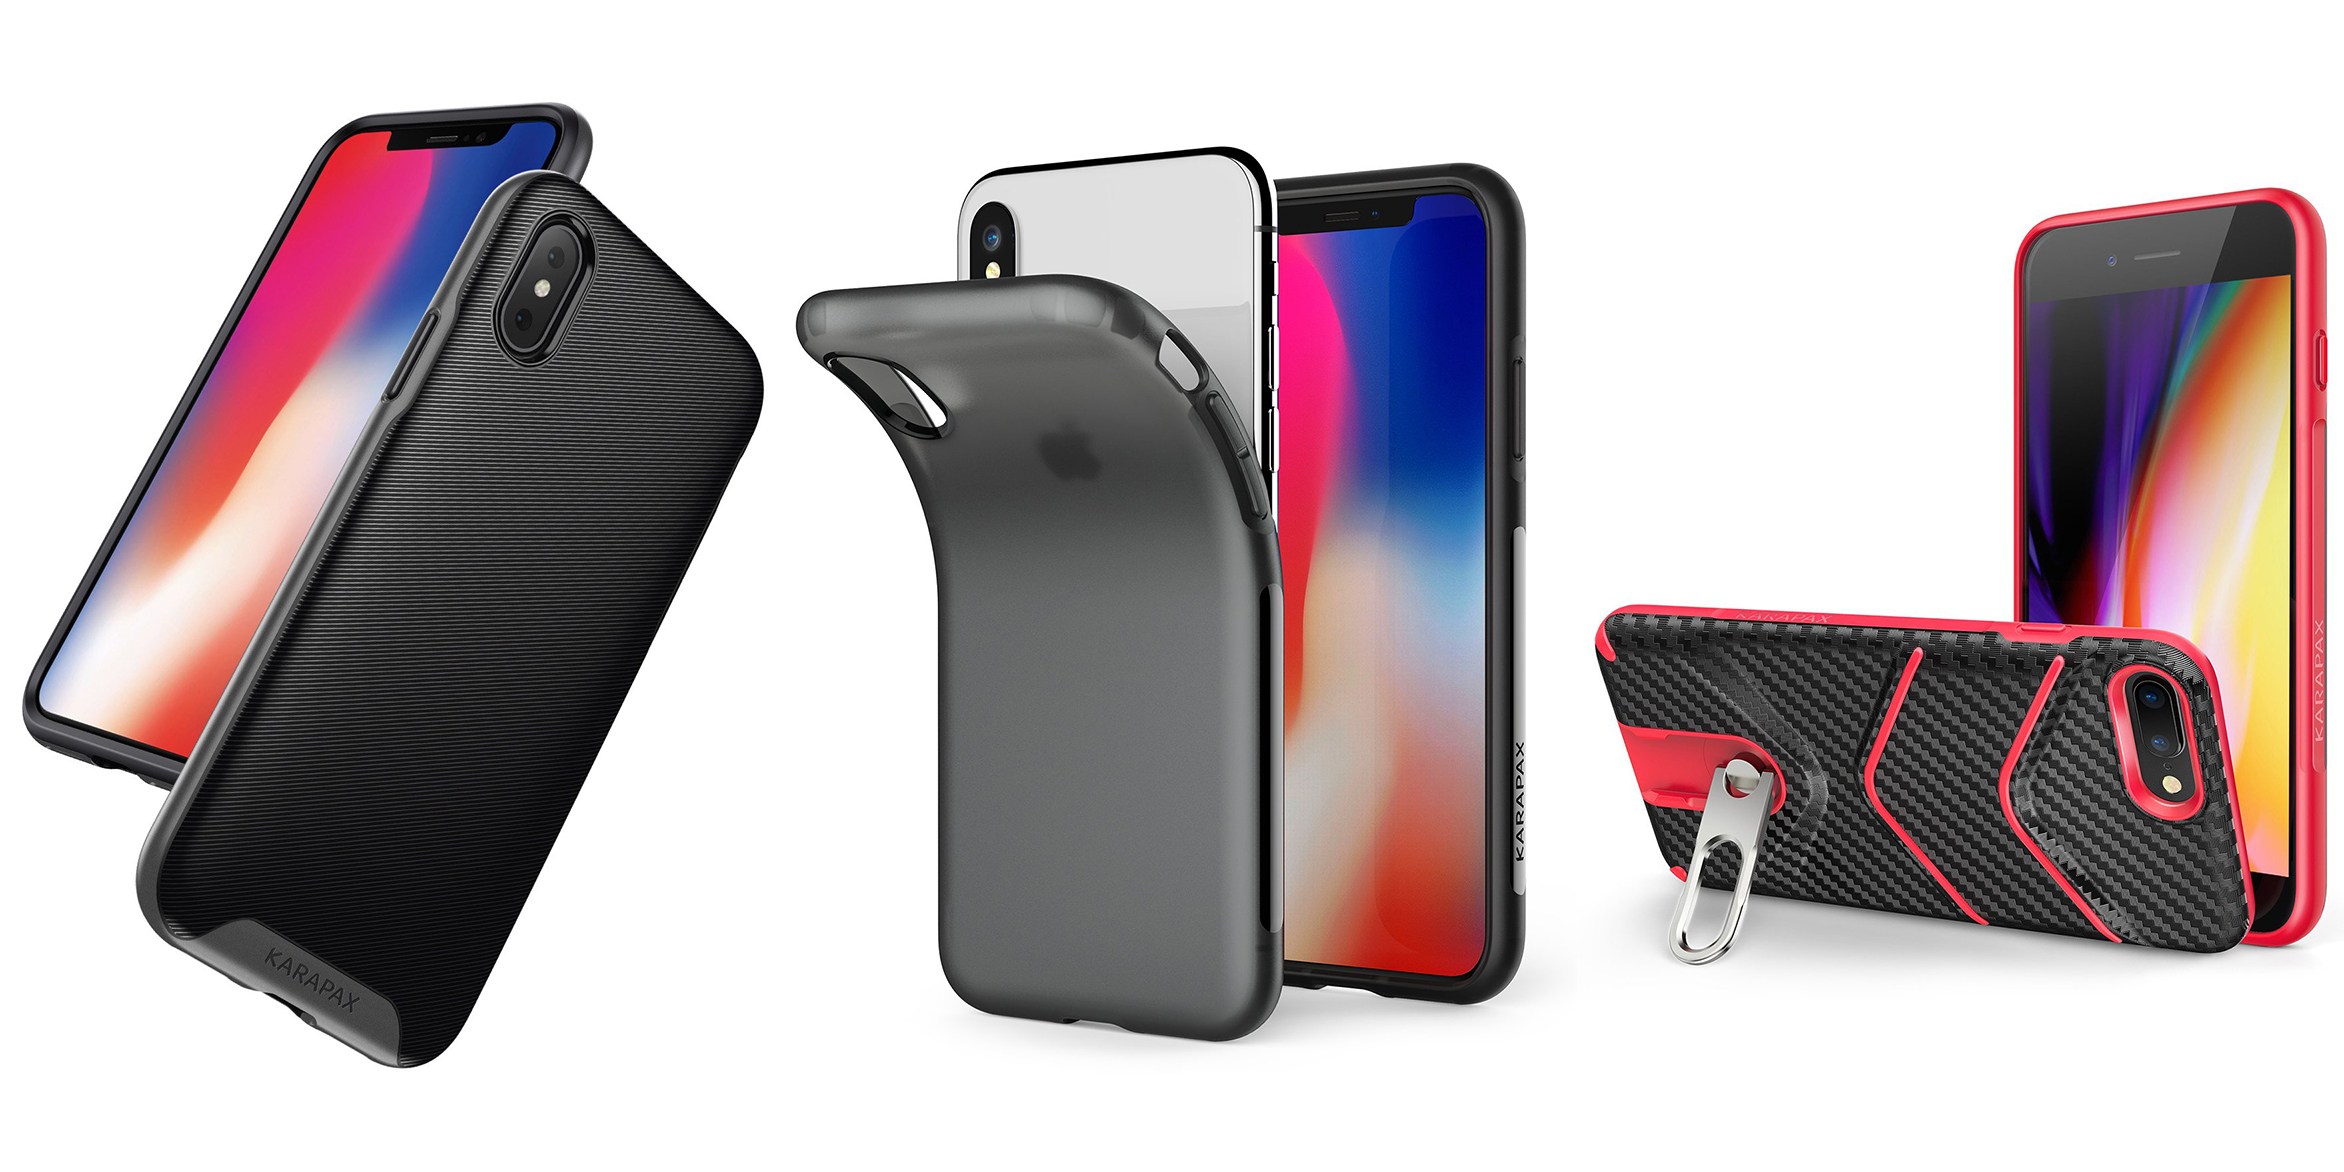 Anker iPhone X and 7/8/Plus cases for $4 in a variety of styles